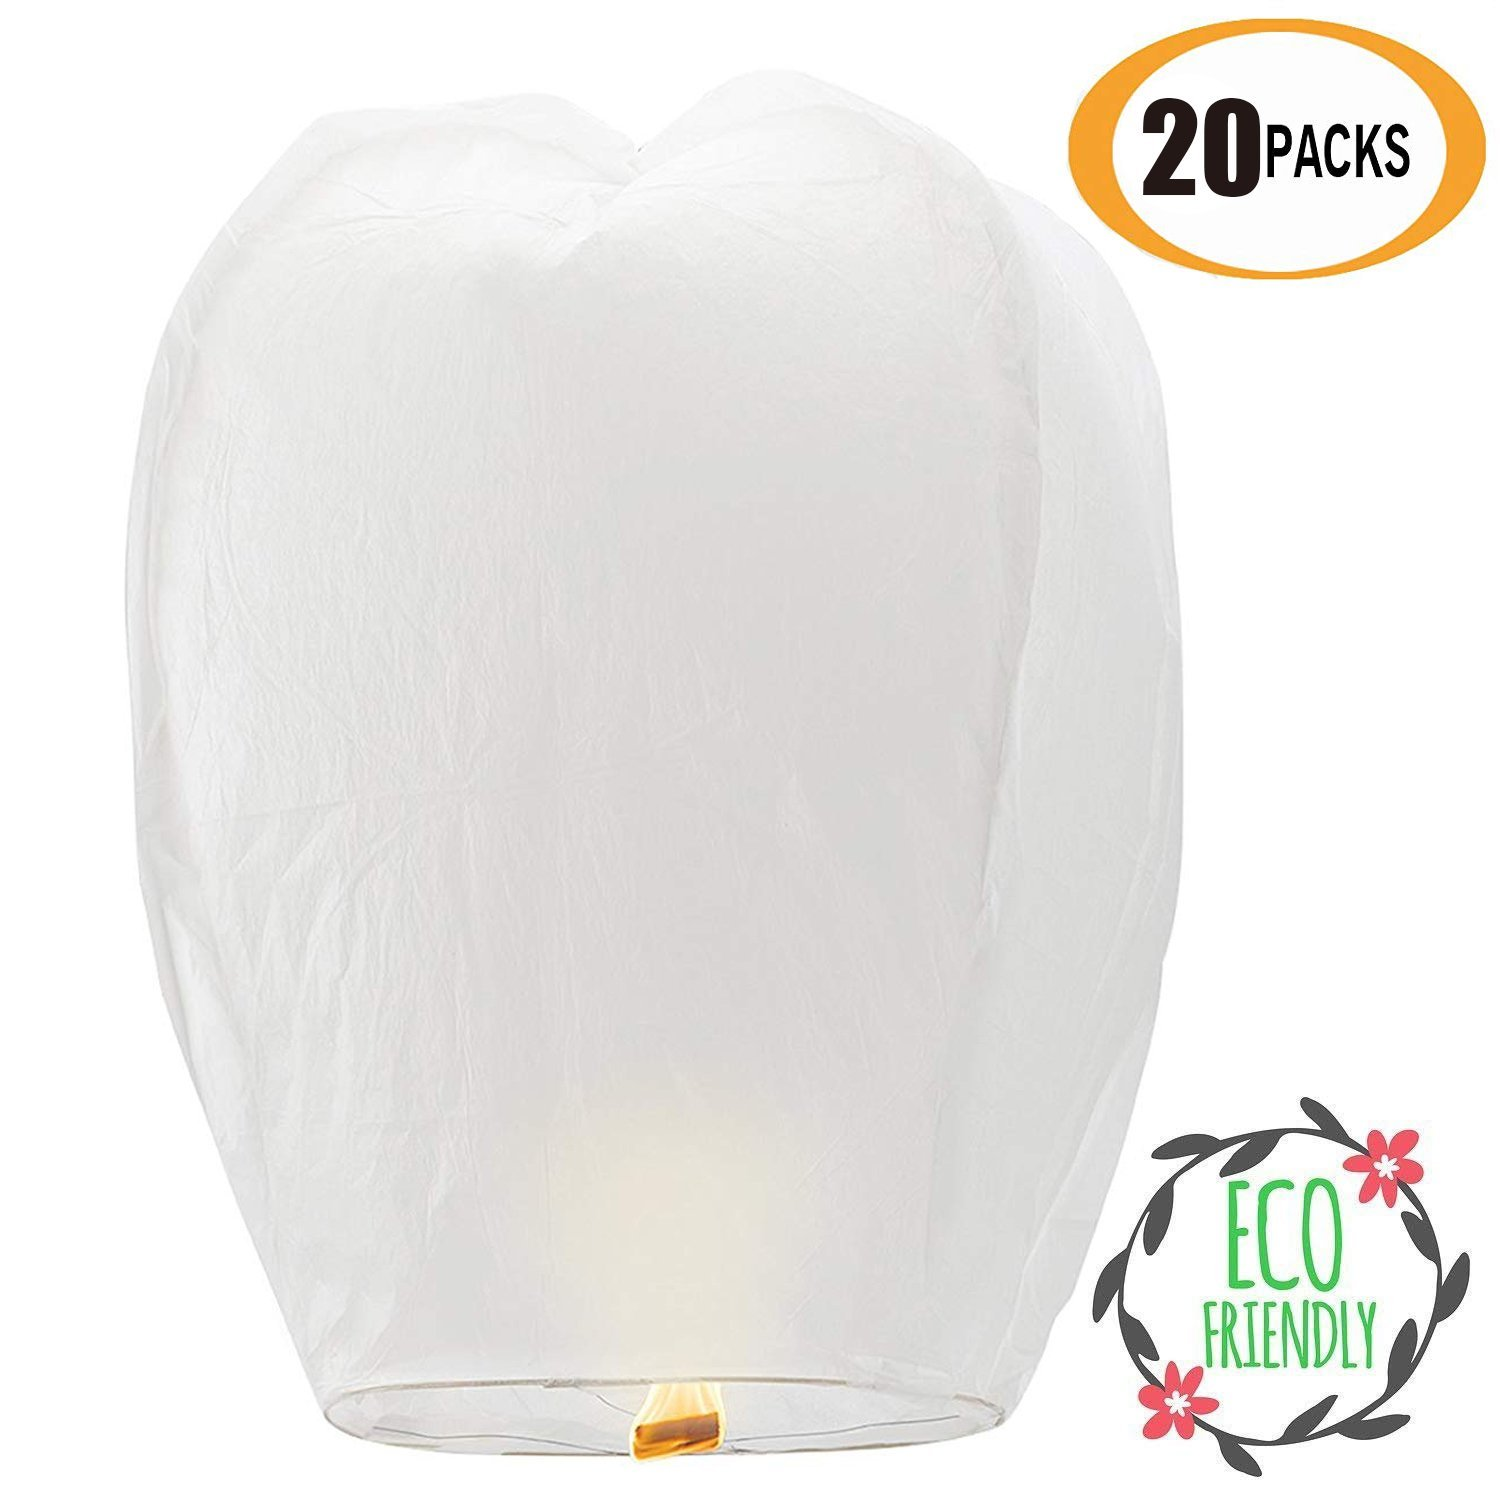 Chinese Paper Flying Sky Lanterns 20 Pack - Extra Large White Eco Friendly 100% Biodegradable - for Wedding, Birthday, Christmas, Party Wish, Memorials, etc by Caryo